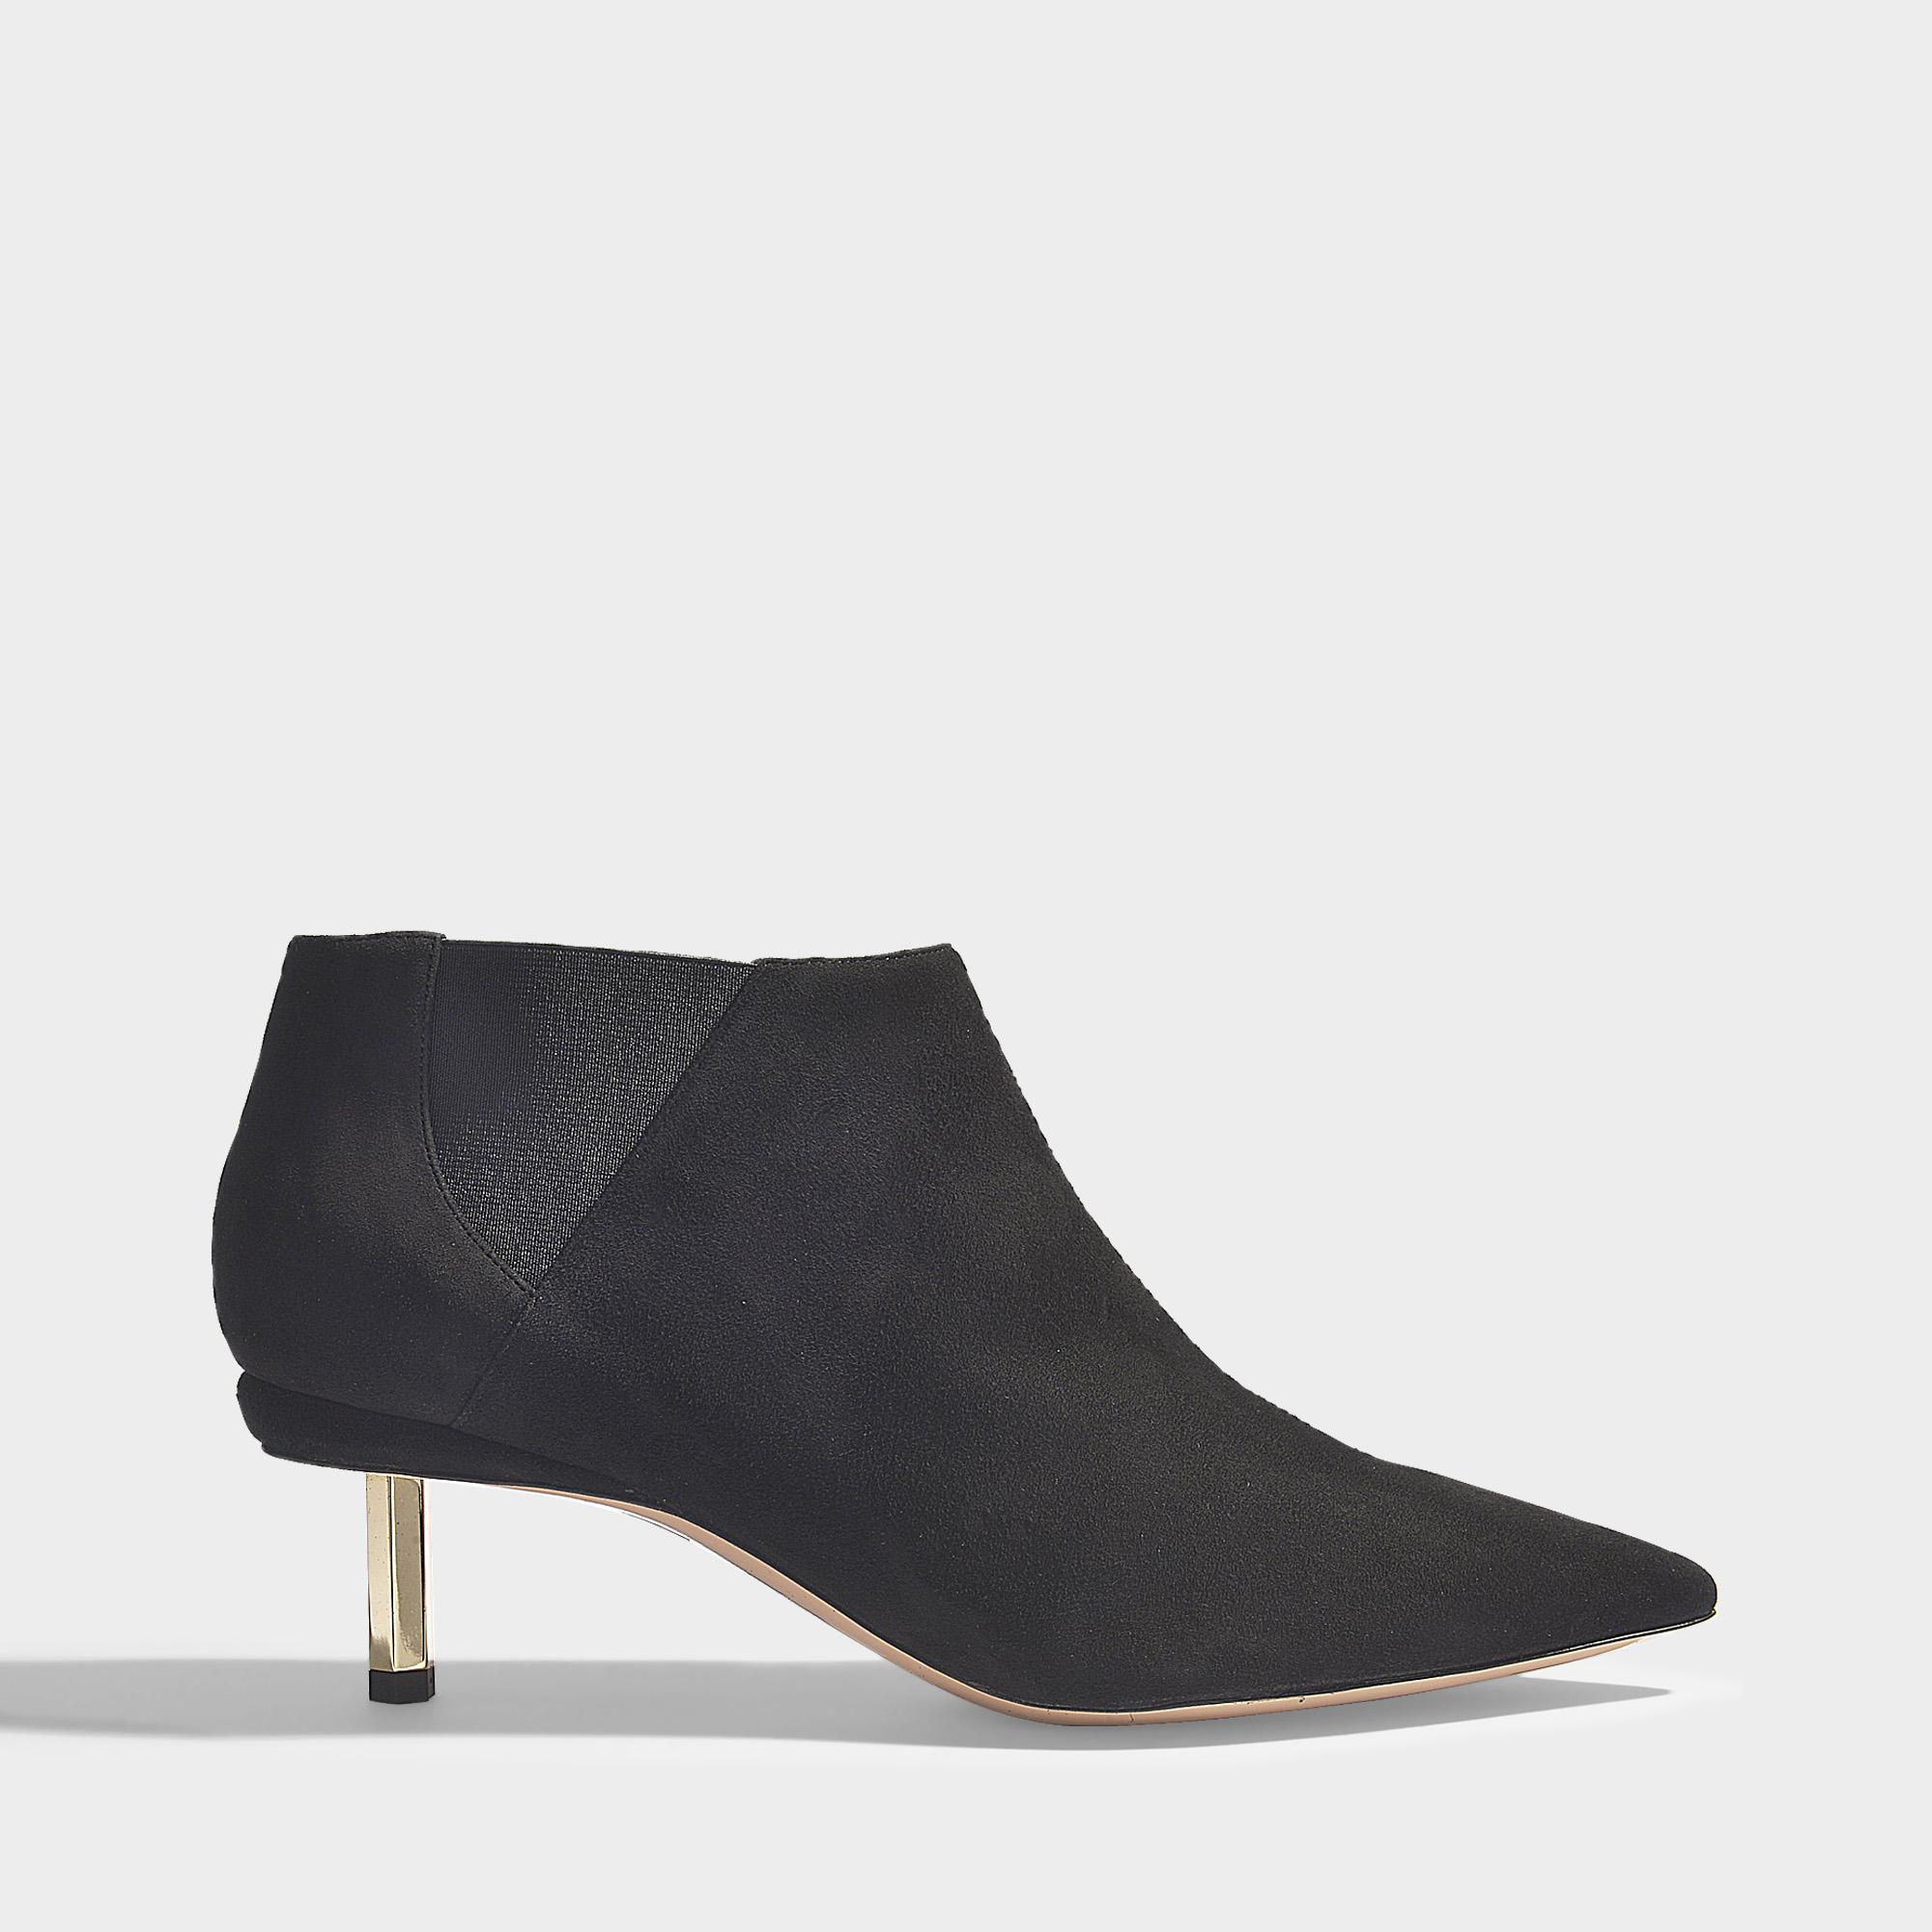 Nicholas Kirkwood. Women s Polly Chelsea Boots In Black Suede Leather 6d991dc8052f4